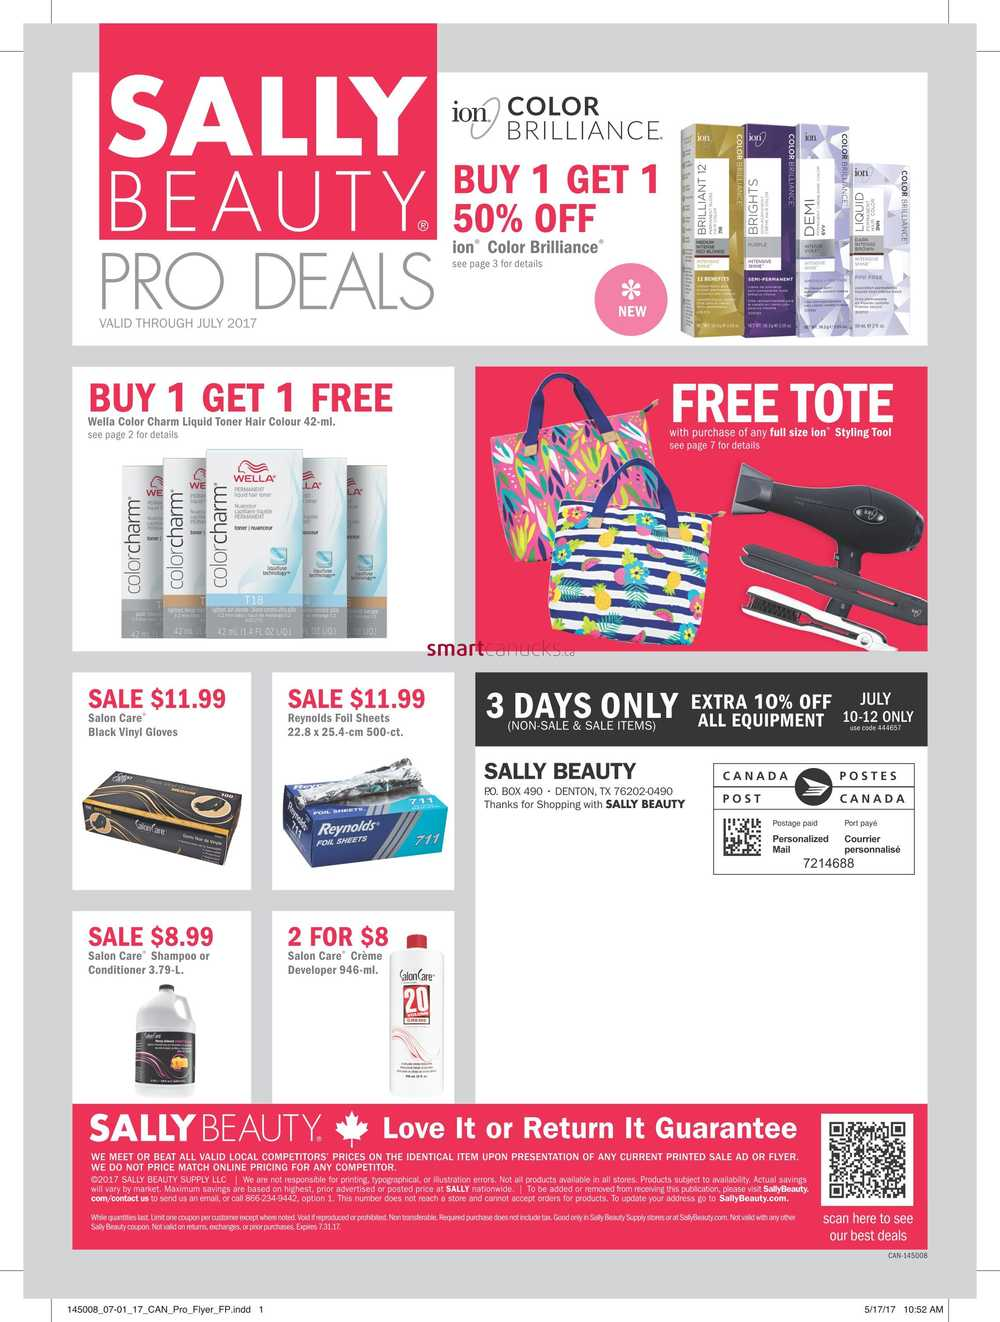 The Beauty Supply Outlet is your one-stop beauty product supply store that carries professional salon products and appliances for all of your hair and beauty needs.